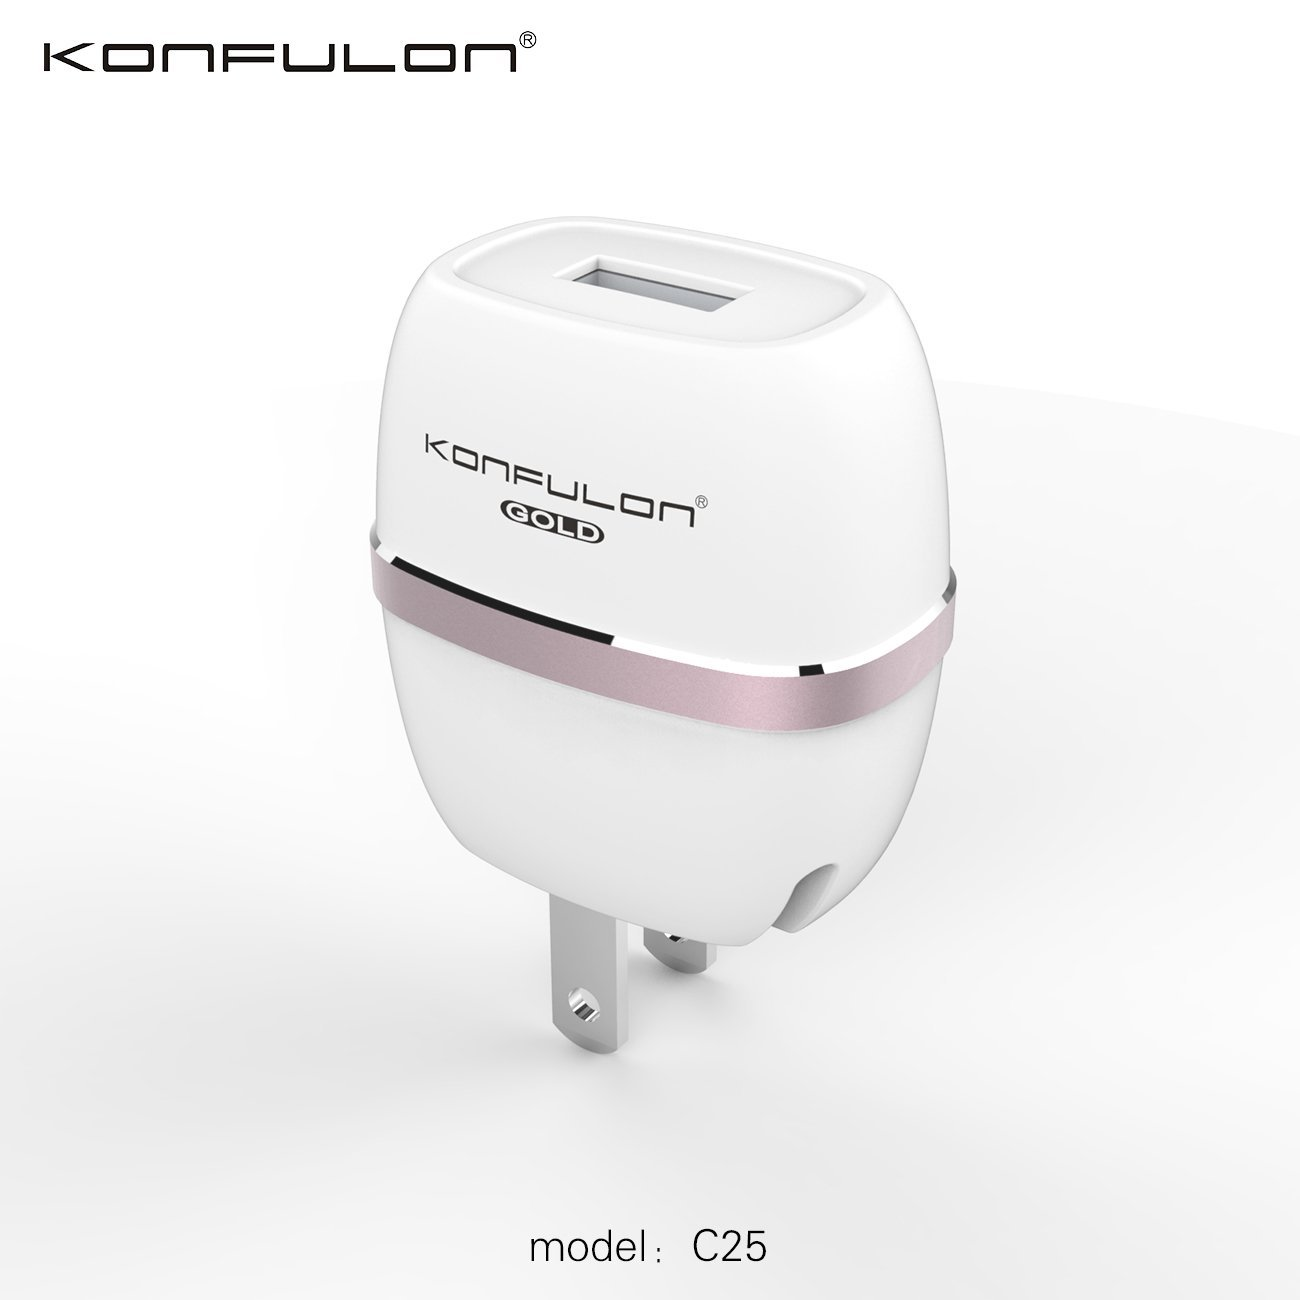 Konfulon C25 5W/1.0A USB Wall Charger (with Foldable Plug) for iPhone 7/7 Plus/6/6 Plus/6S/6S plus/SE, iPad Air 2 / Pro / mini 3, Galaxy S7 / S7 Edge / S6 / S6 Edge / Edge+, Note 5, LG G5 and More